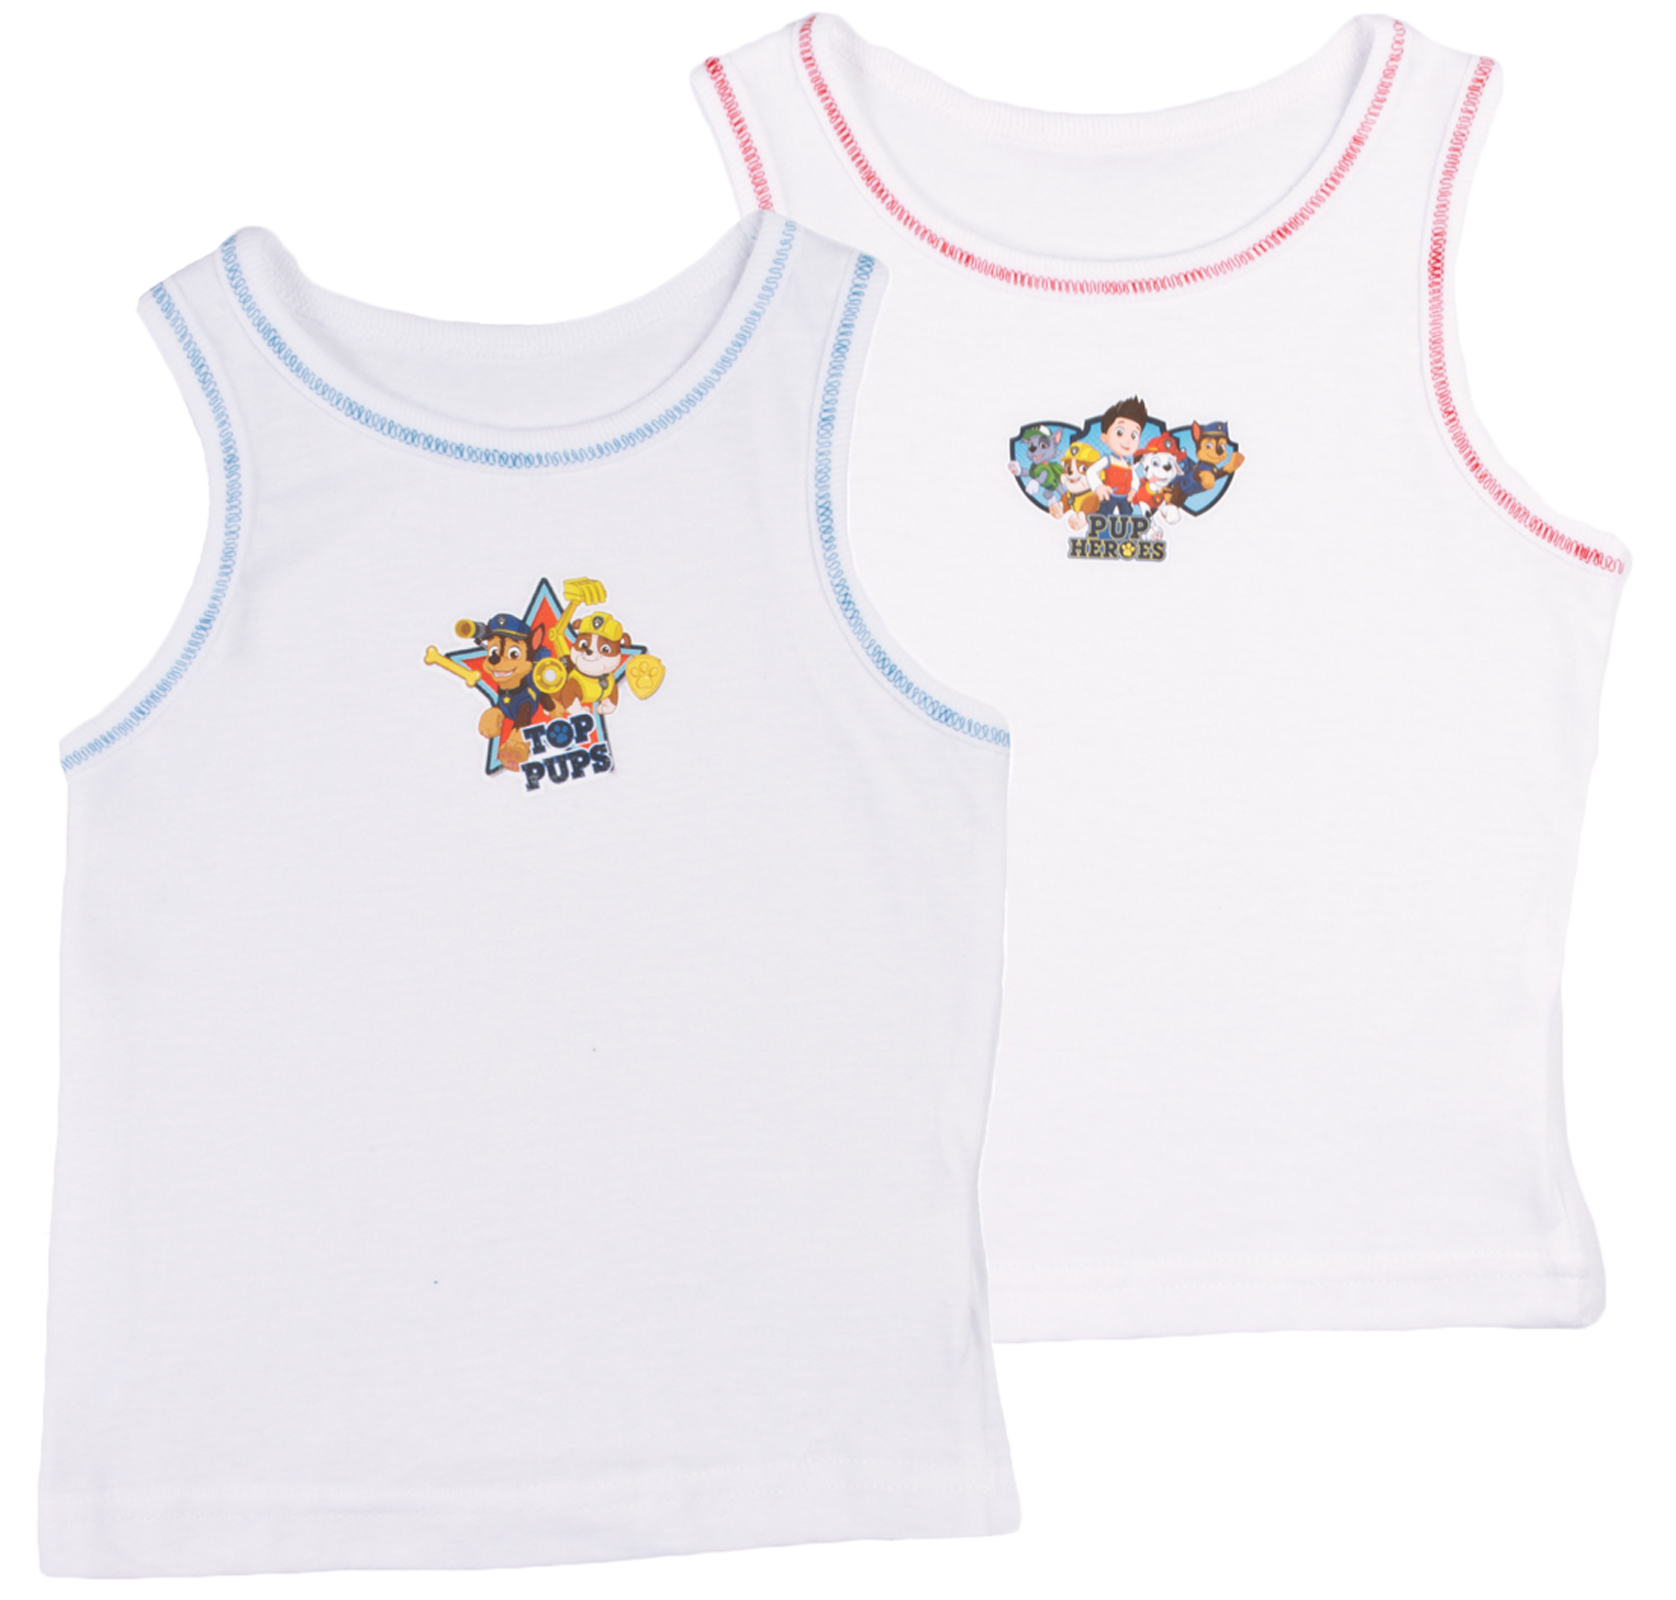 Kids Boys Toddlers 2 Pack Character Underwear Vests Set 100/% Cotton Tops Size